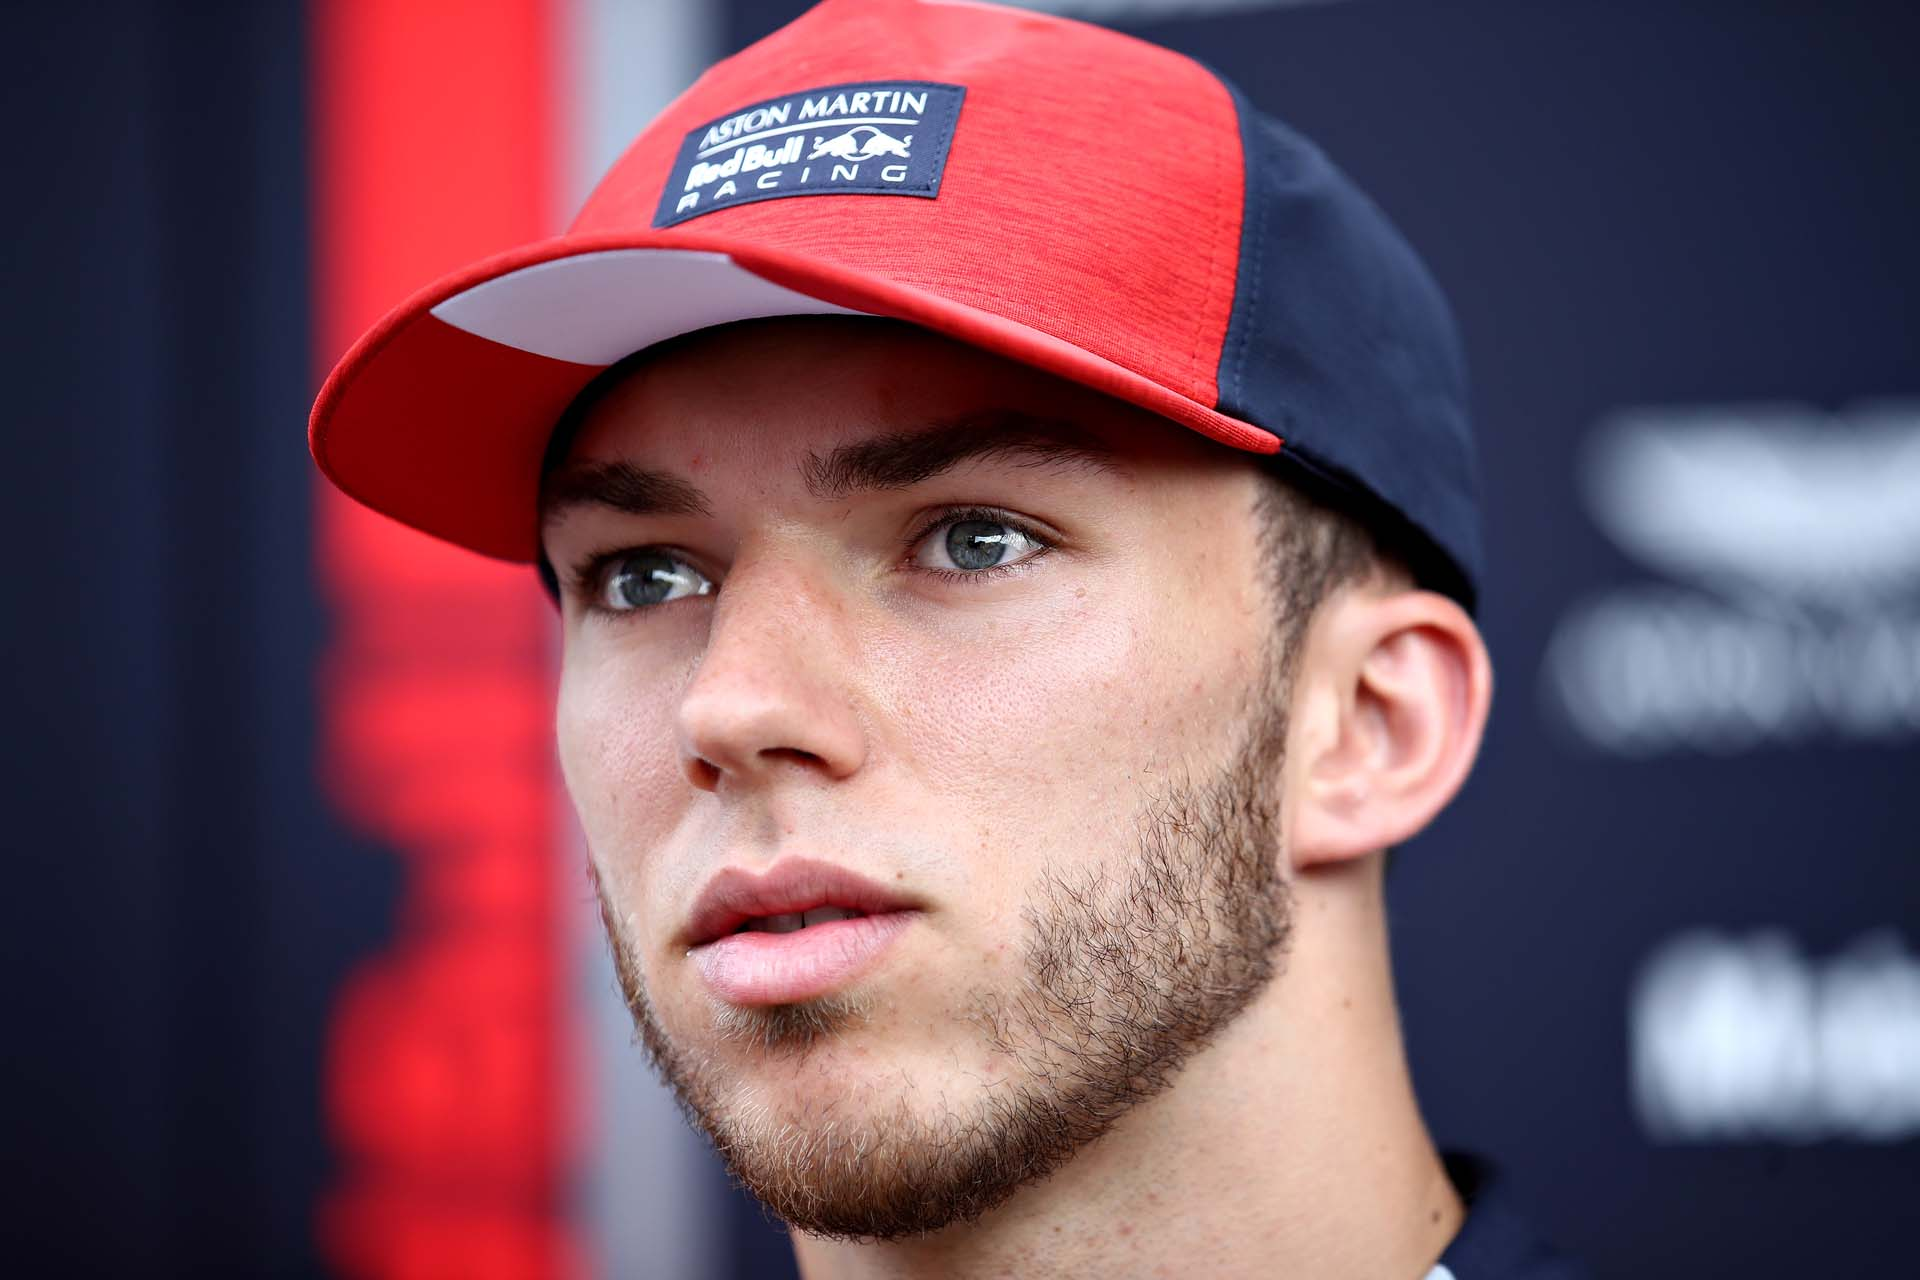 SPIELBERG, AUSTRIA - JUNE 27: Pierre Gasly of France and Red Bull Racing talks to the media in the Paddock during previews ahead of the F1 Grand Prix of Austria at Red Bull Ring on June 27, 2019 in Spielberg, Austria. (Photo by Bryn Lennon/Getty Images) // Getty Images / Red Bull Content Pool  // AP-1ZS9E8QK11W11 // Usage for editorial use only // Please go to www.redbullcontentpool.com for further information. //